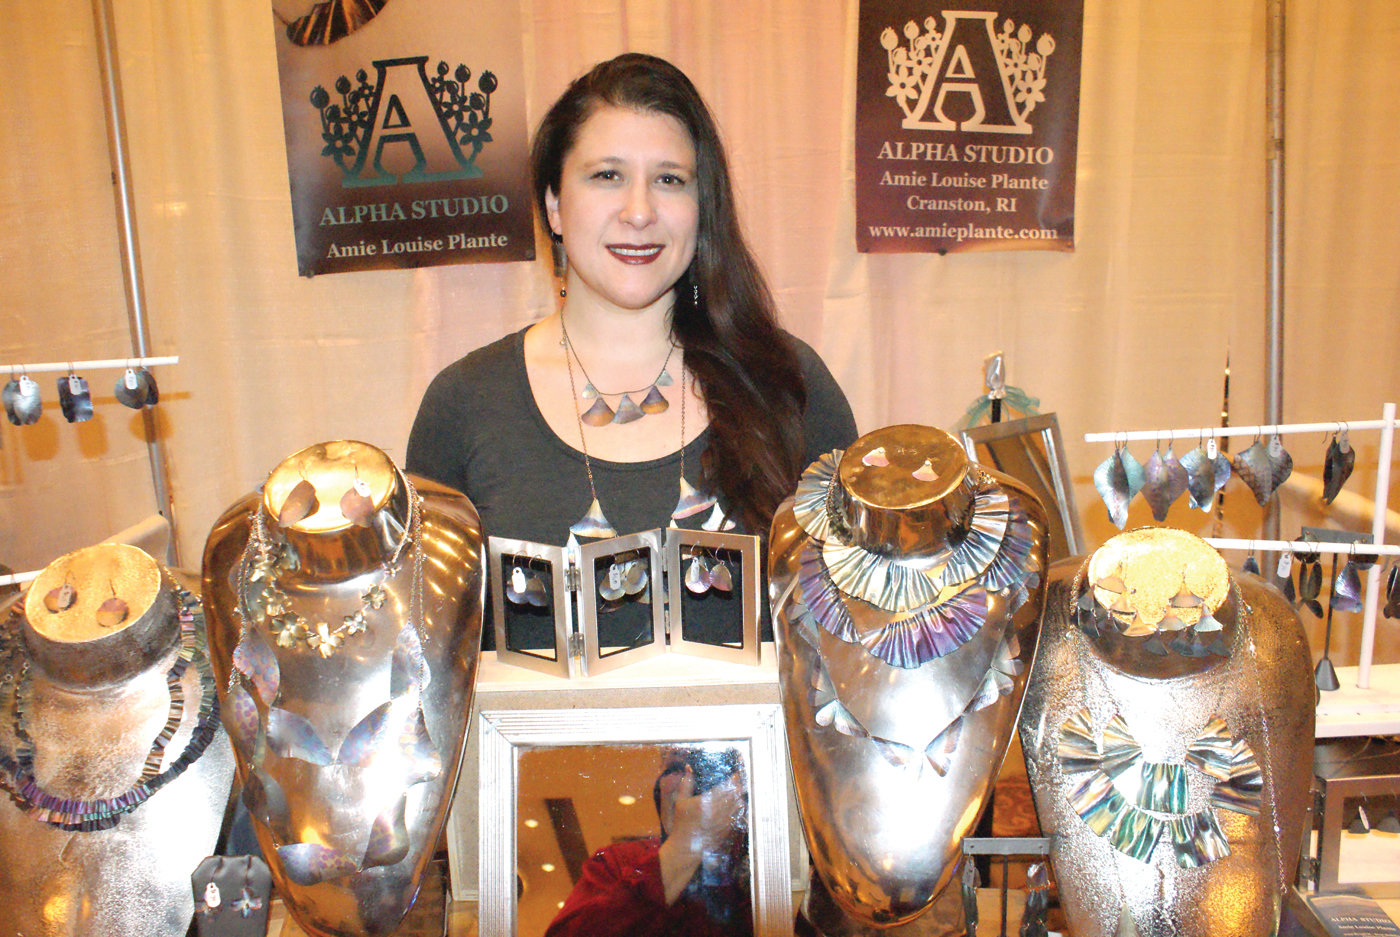 UNIQUE JEWLERY: At her display booth during the Rhode Island Women's Expo at the Crowne Plaza was Annie Louise Plante, Owner and Designer of fine art jewelry, Alpha Studio located in Cranston.